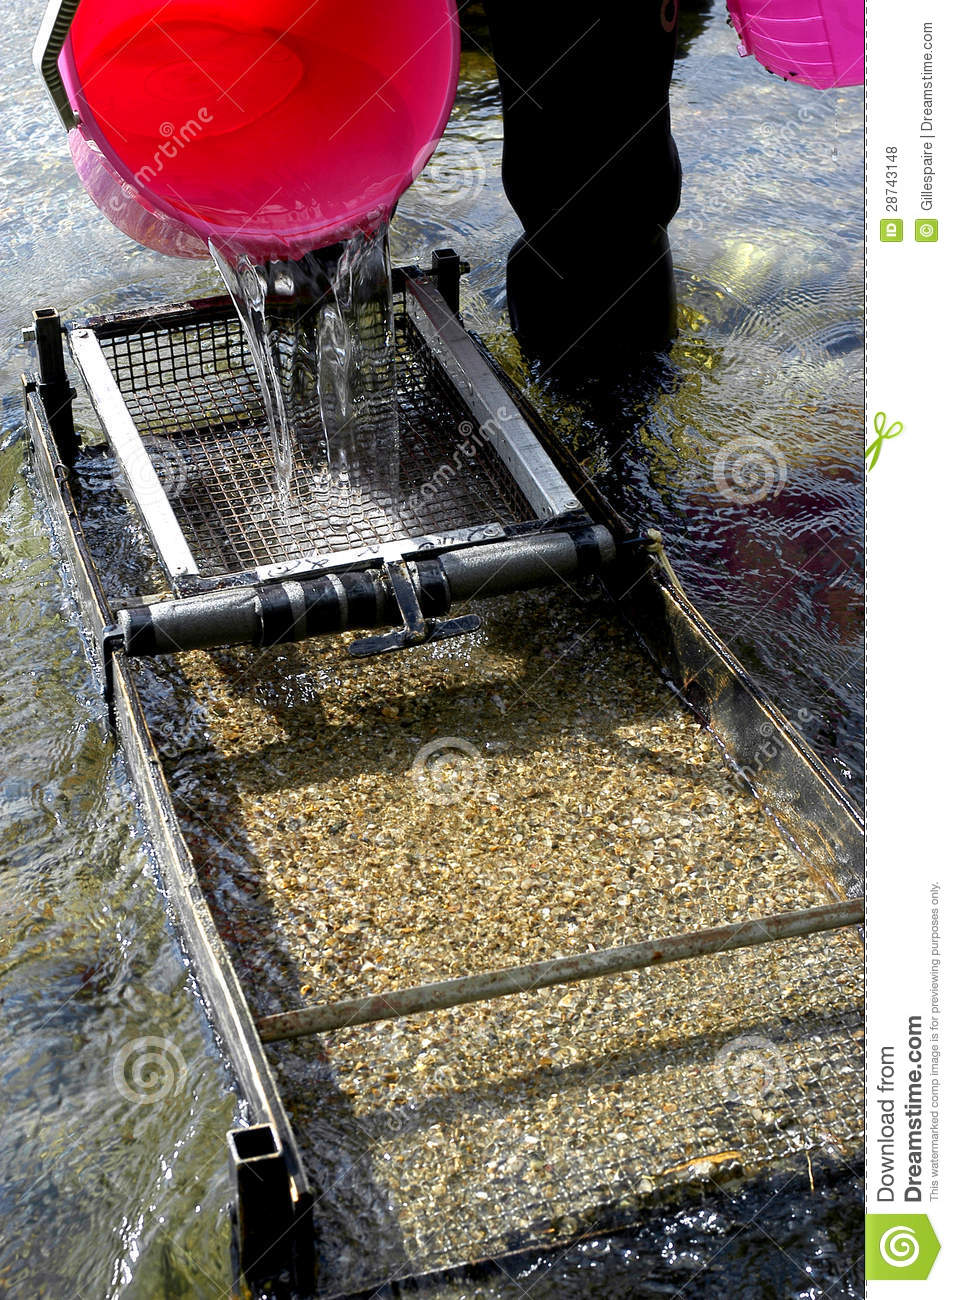 Prospector Panning For Gold In River Royalty Free Stock